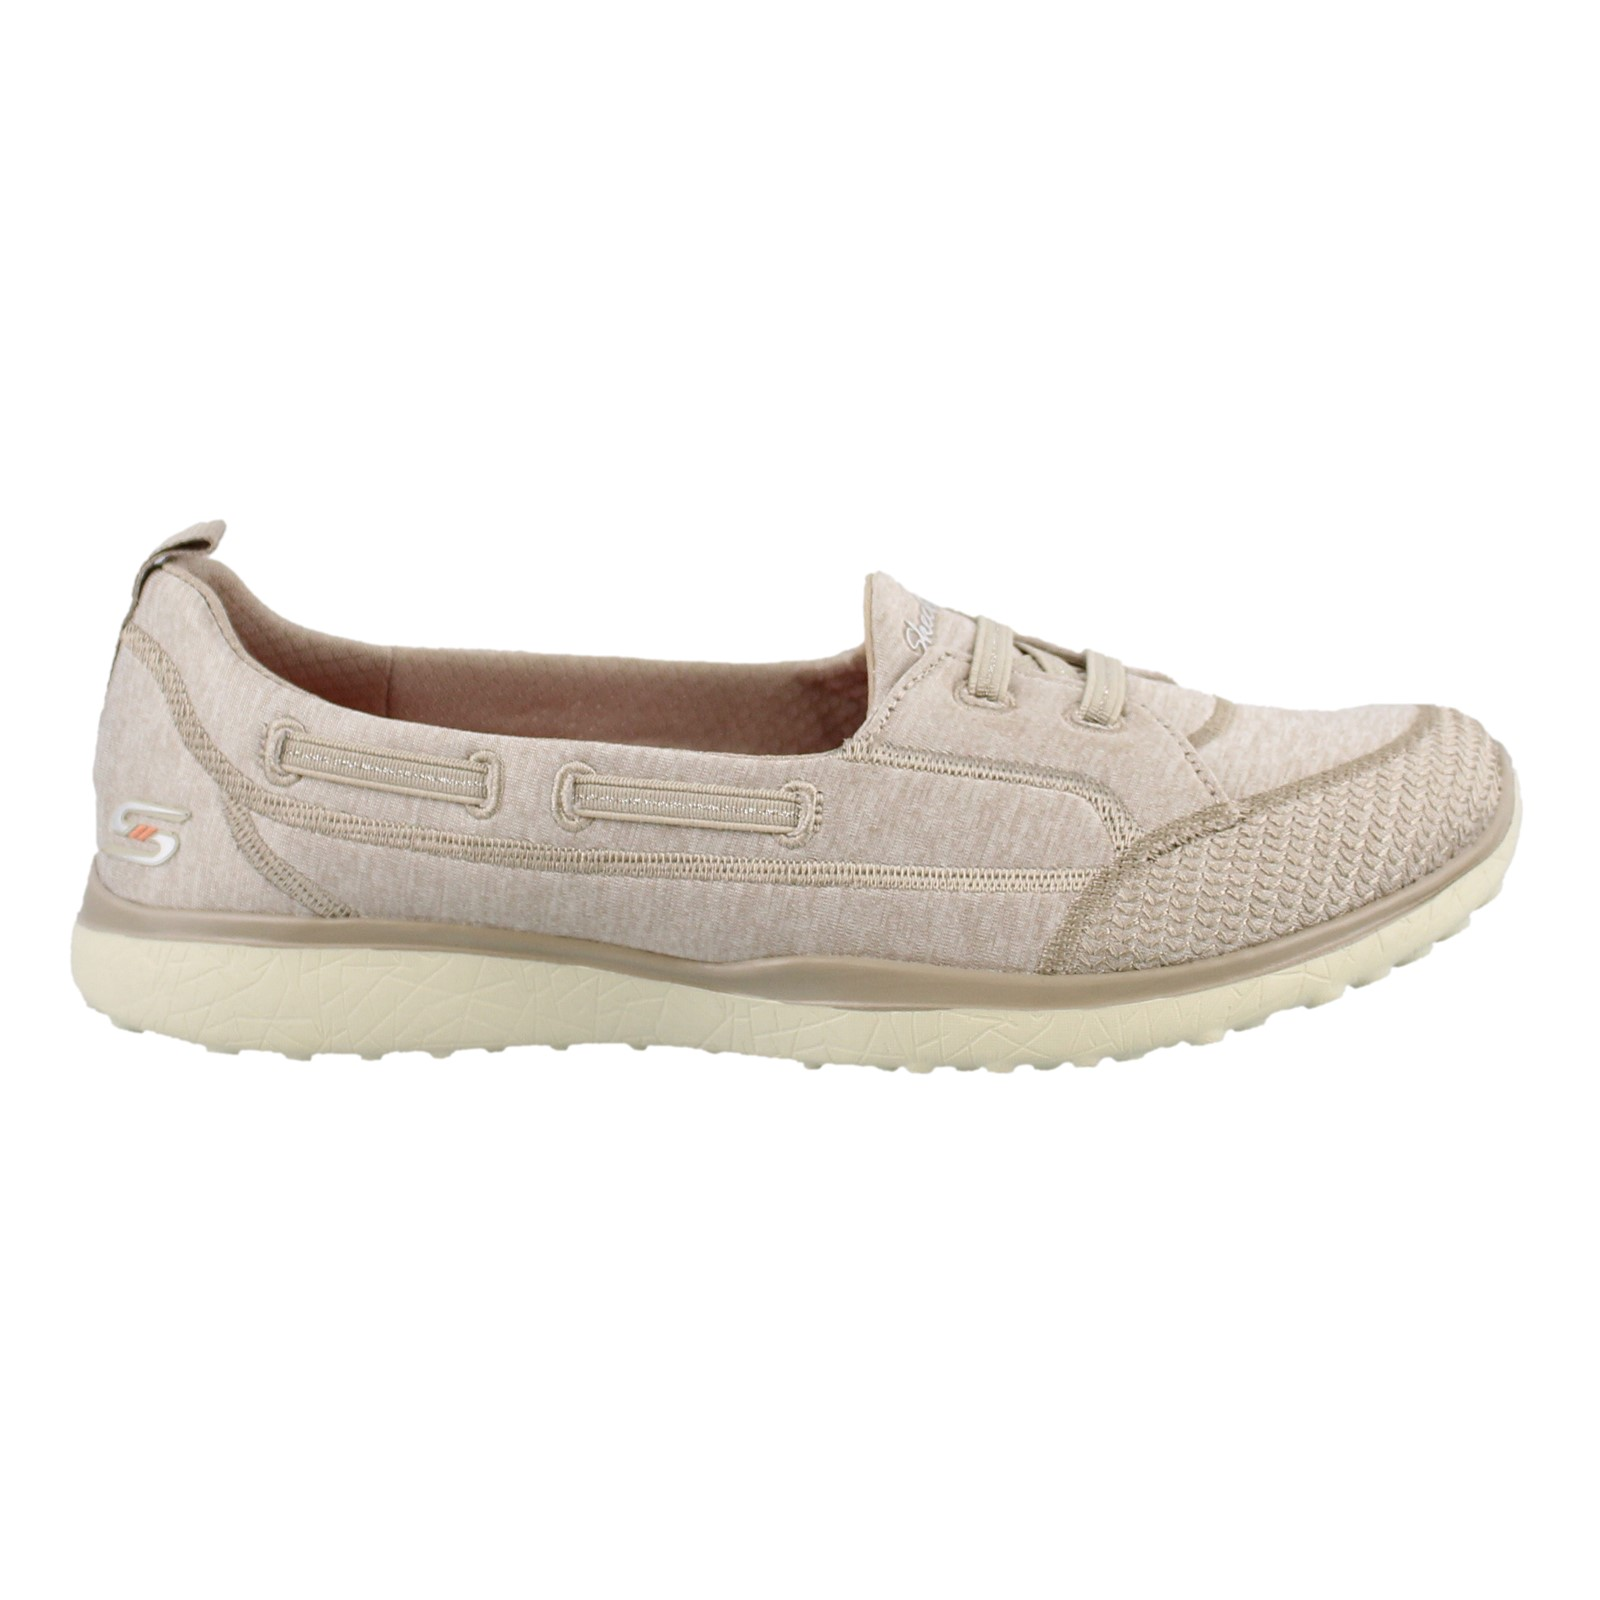 4862187bc56f Home  Women s Skechers